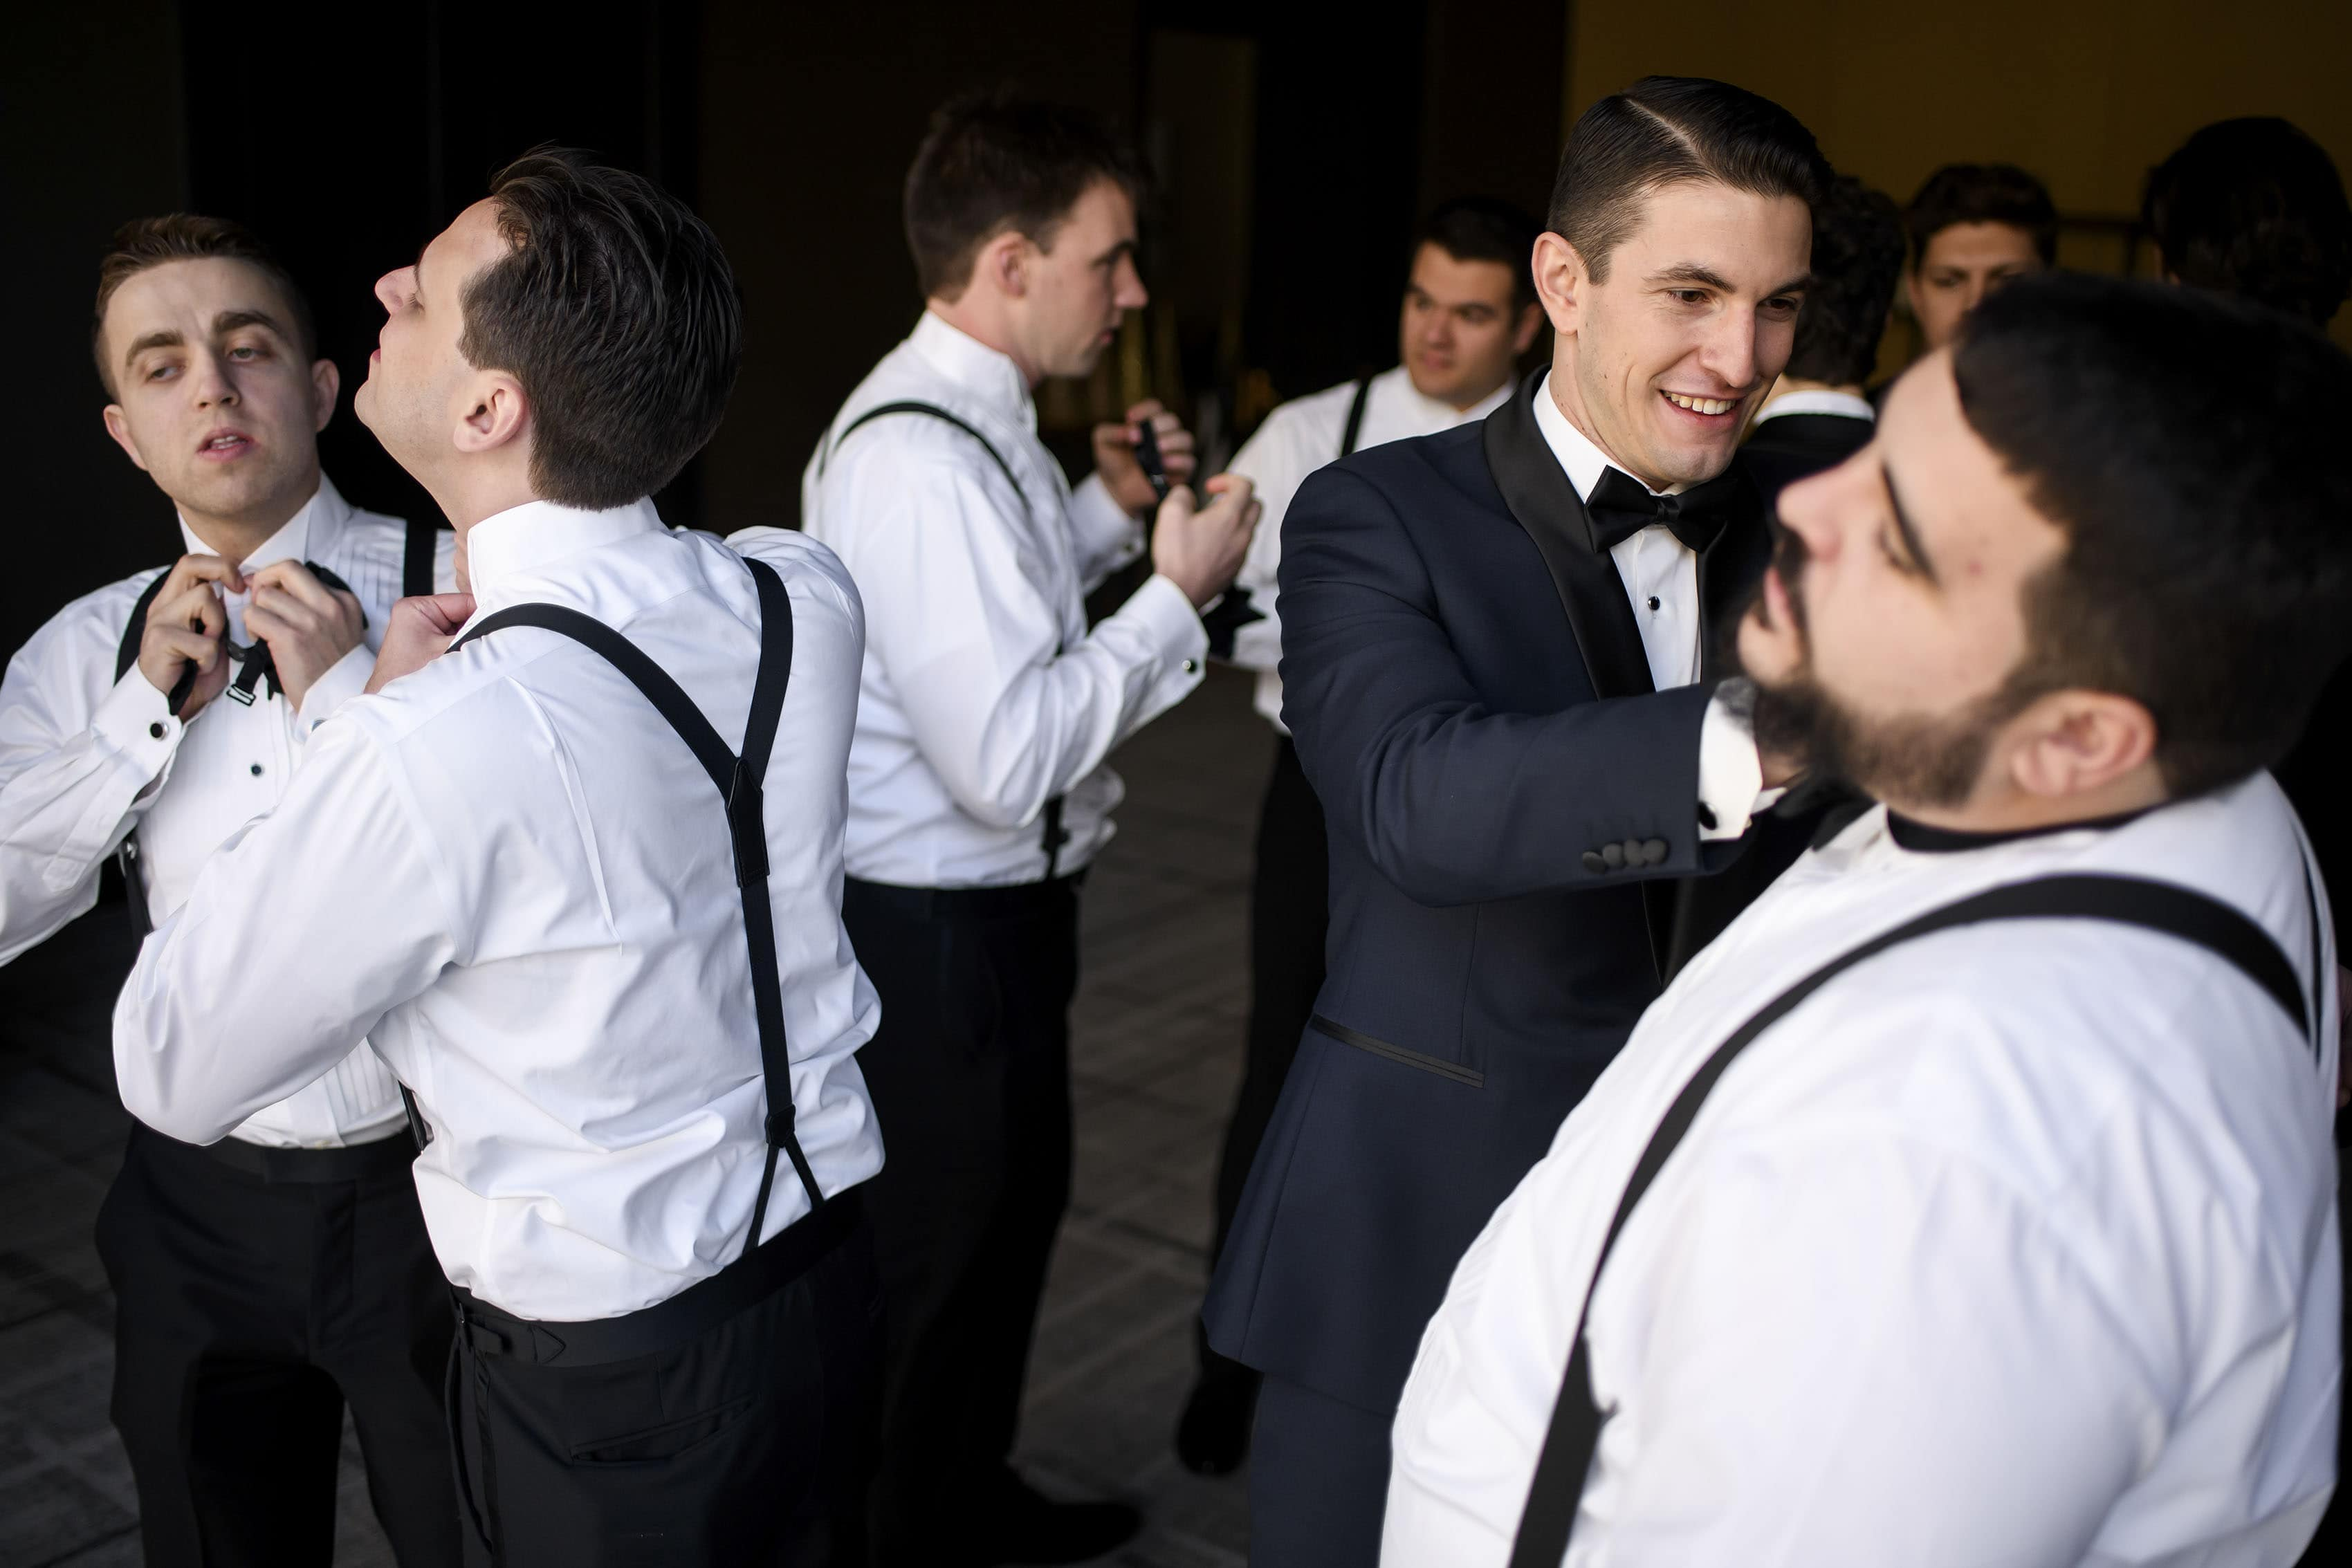 Alex helps a groomsment with his tie while getting ready for the wedding at the Halcyon Hotel in Denver